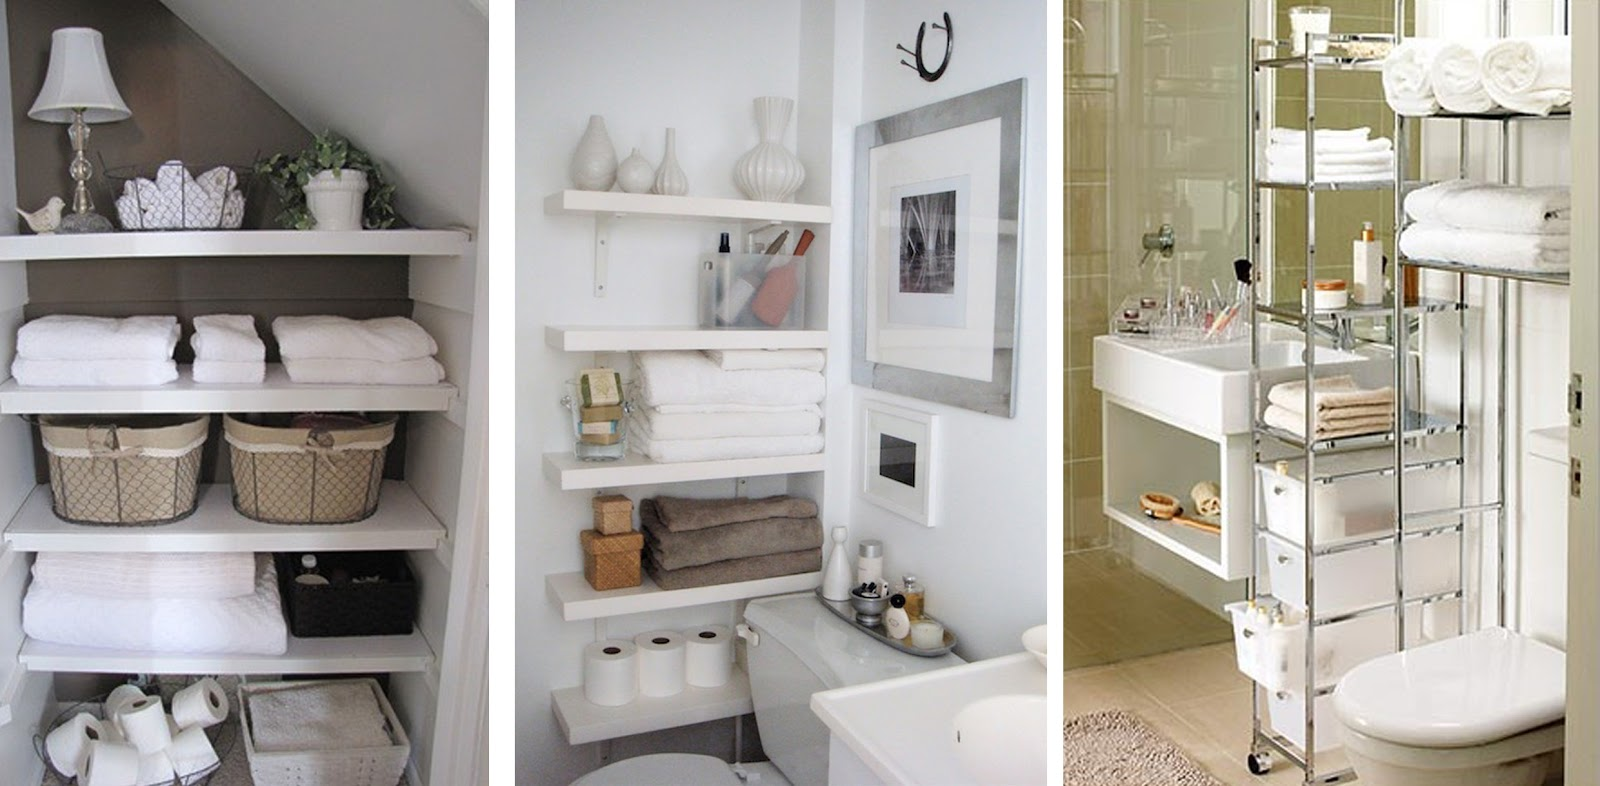 Baño Pequeno Rectangular:HomePersonalShopper Blog decoración e ideas fáciles para tu casa